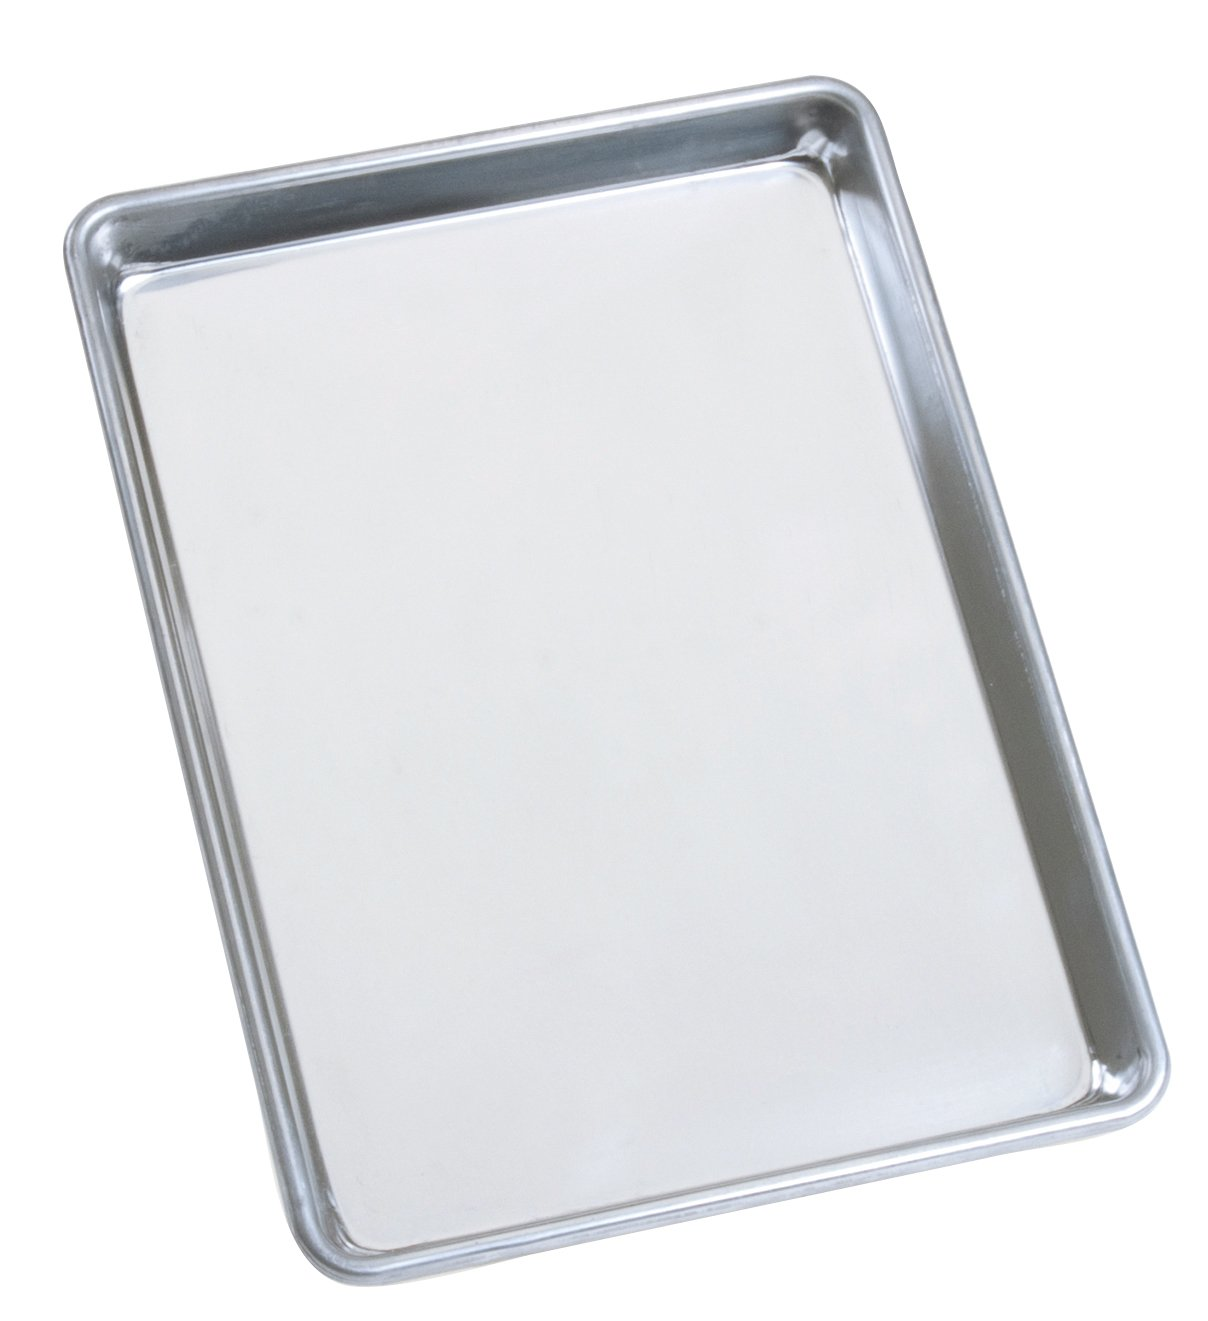 Sil-Eco Half Size Aluminum Baking Pan, 13 by 18-Inch E-95126